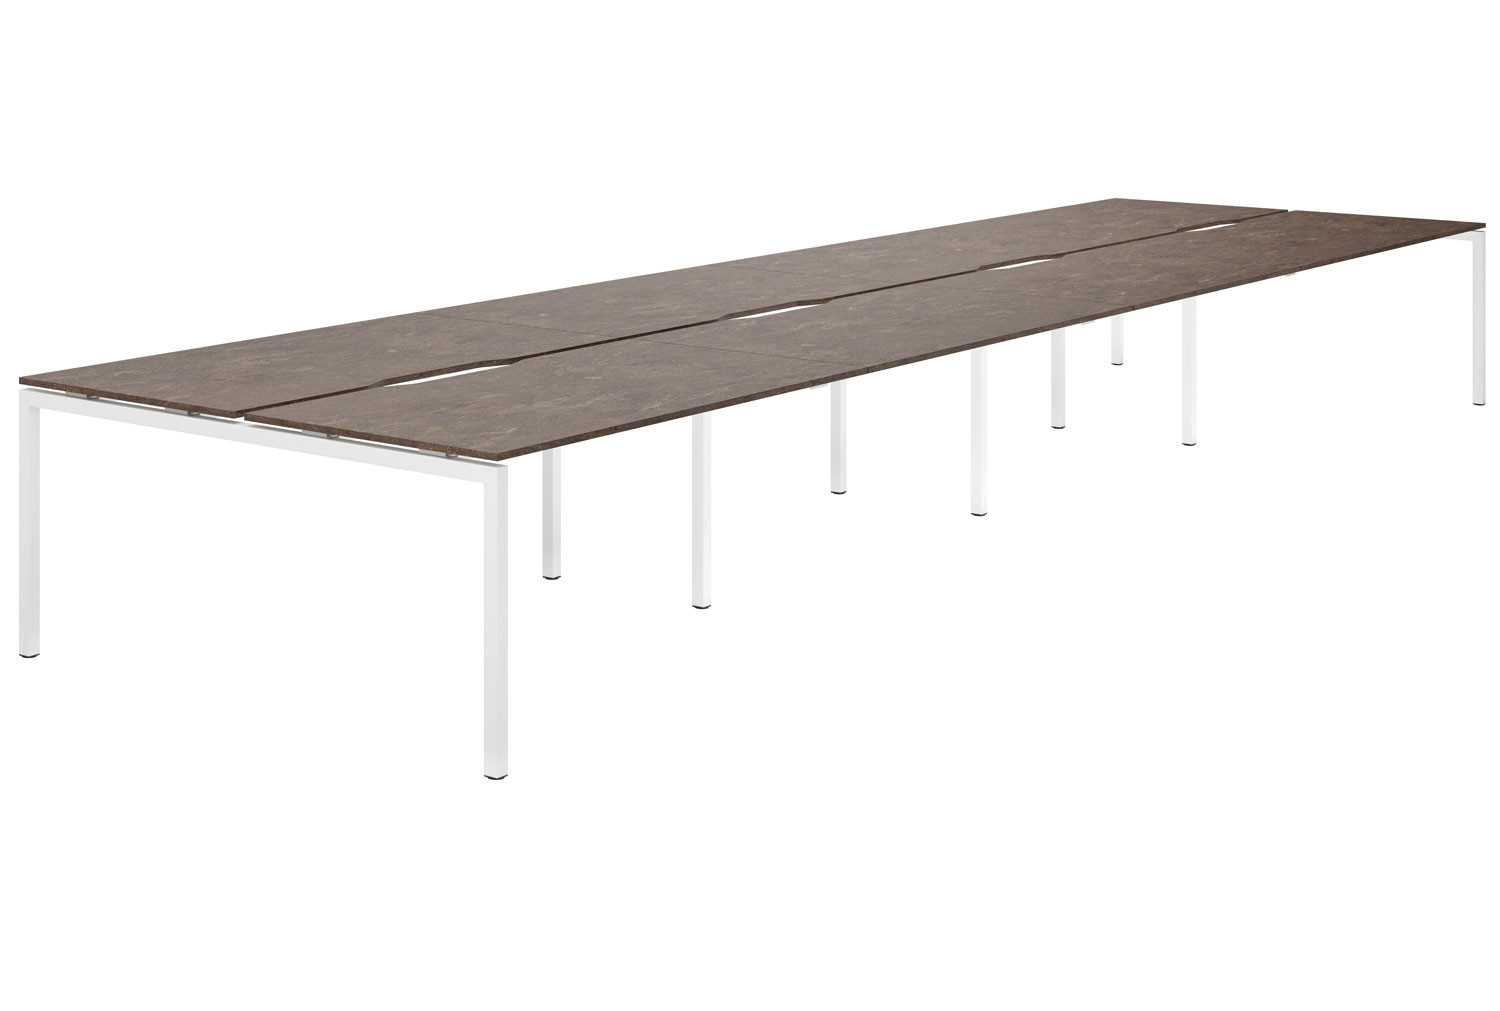 Lasso H-Leg 8 Person Back To Back Bench Desk (Pitted Steel)